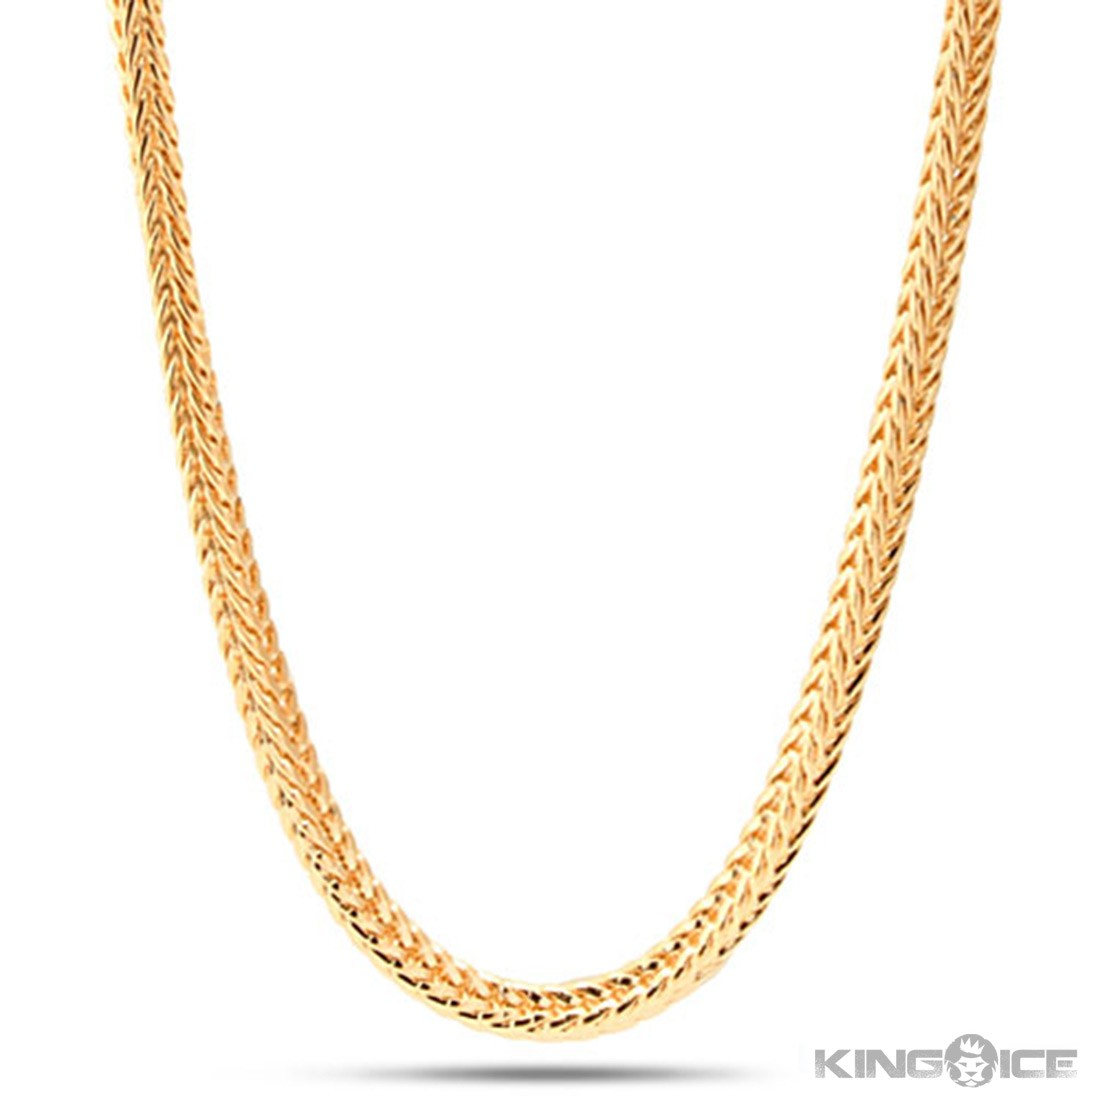 4mm Mens 14K Yellow Gold Plated Franco Chain Hip Hop Jewelry » Gold Chain  Bracelet K Hd Mm Mens K Yellow Gold Plated Franco Chain Hip Hop Jewelry - Chain HD PNG